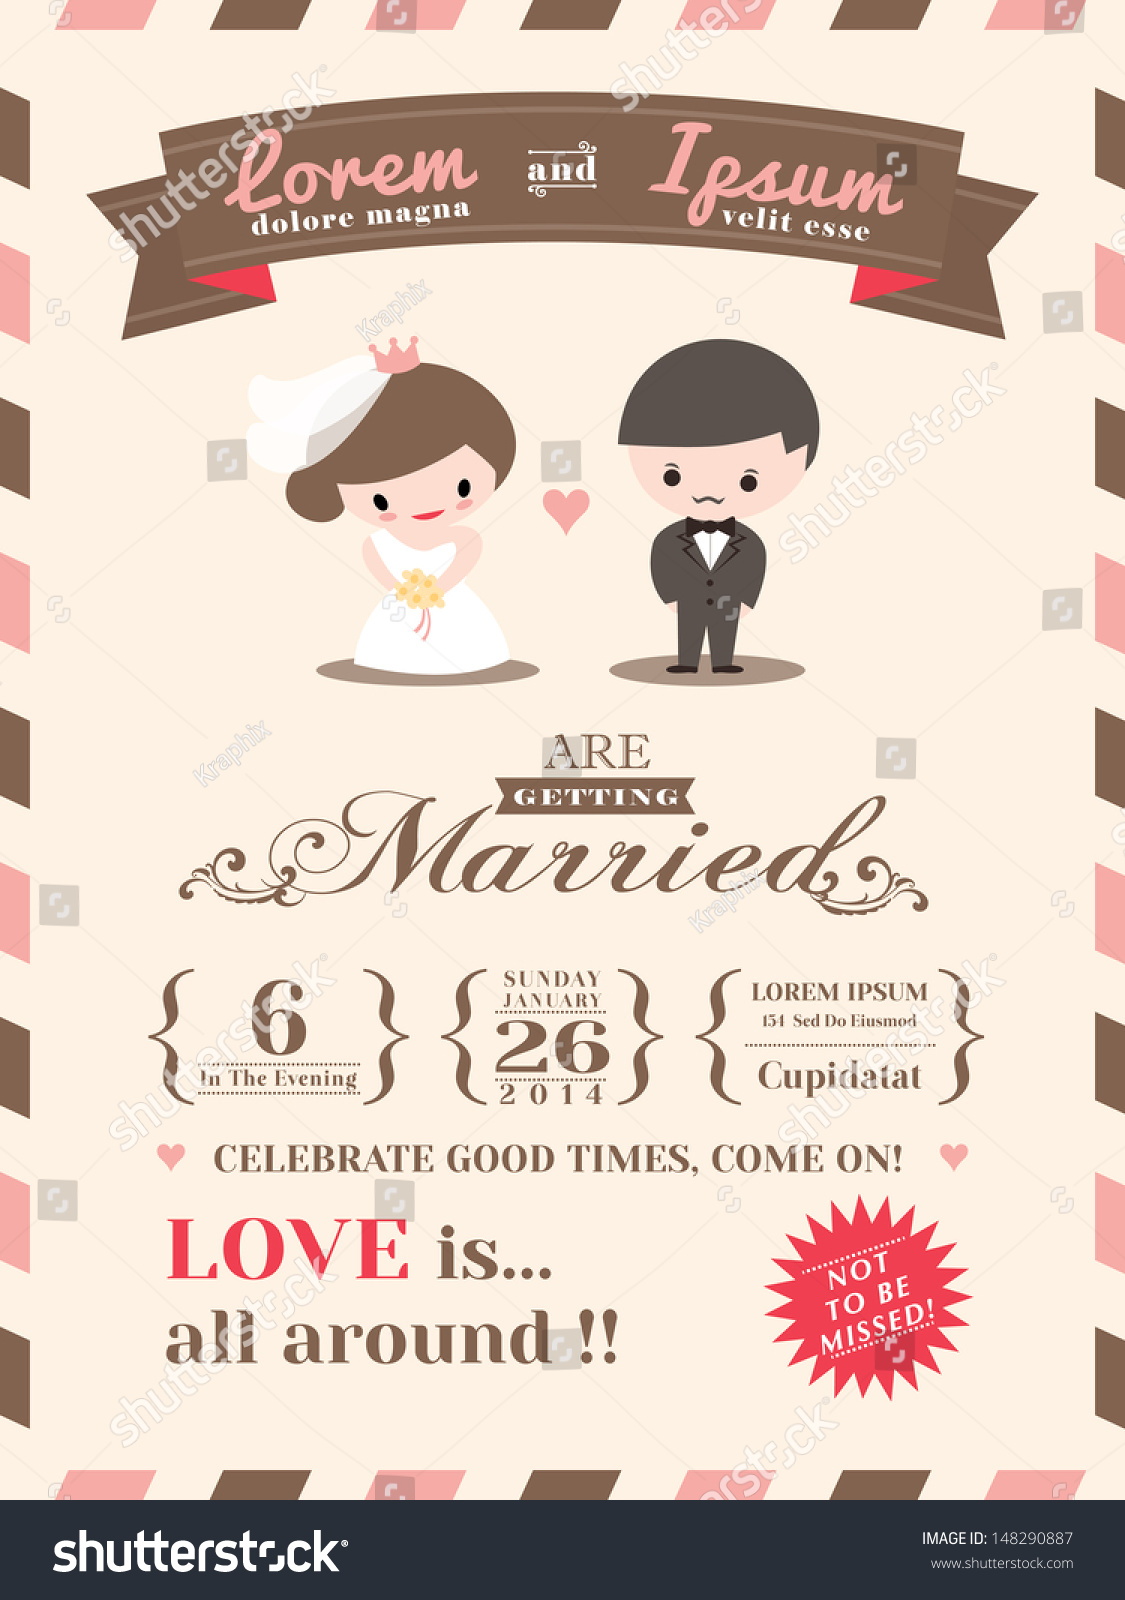 Invitation Card Template Video: Wedding Invitation Card Template Cute Groom Stock Vector